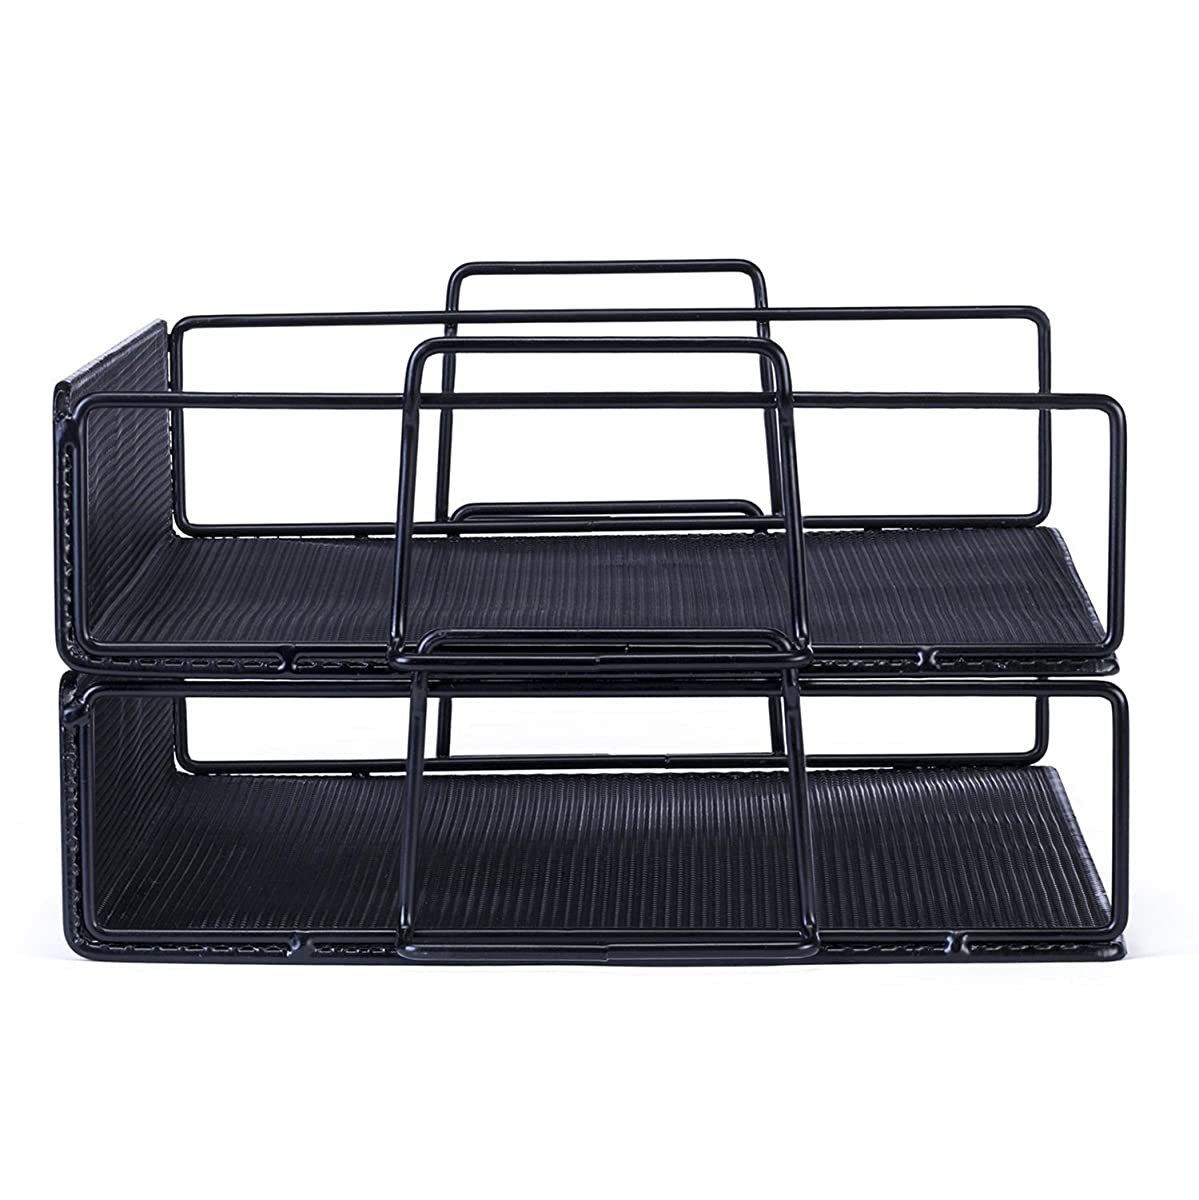 Mindspace 2 Tier Stackable Letter Tray Desk Organizer | The Mesh Collection, Black